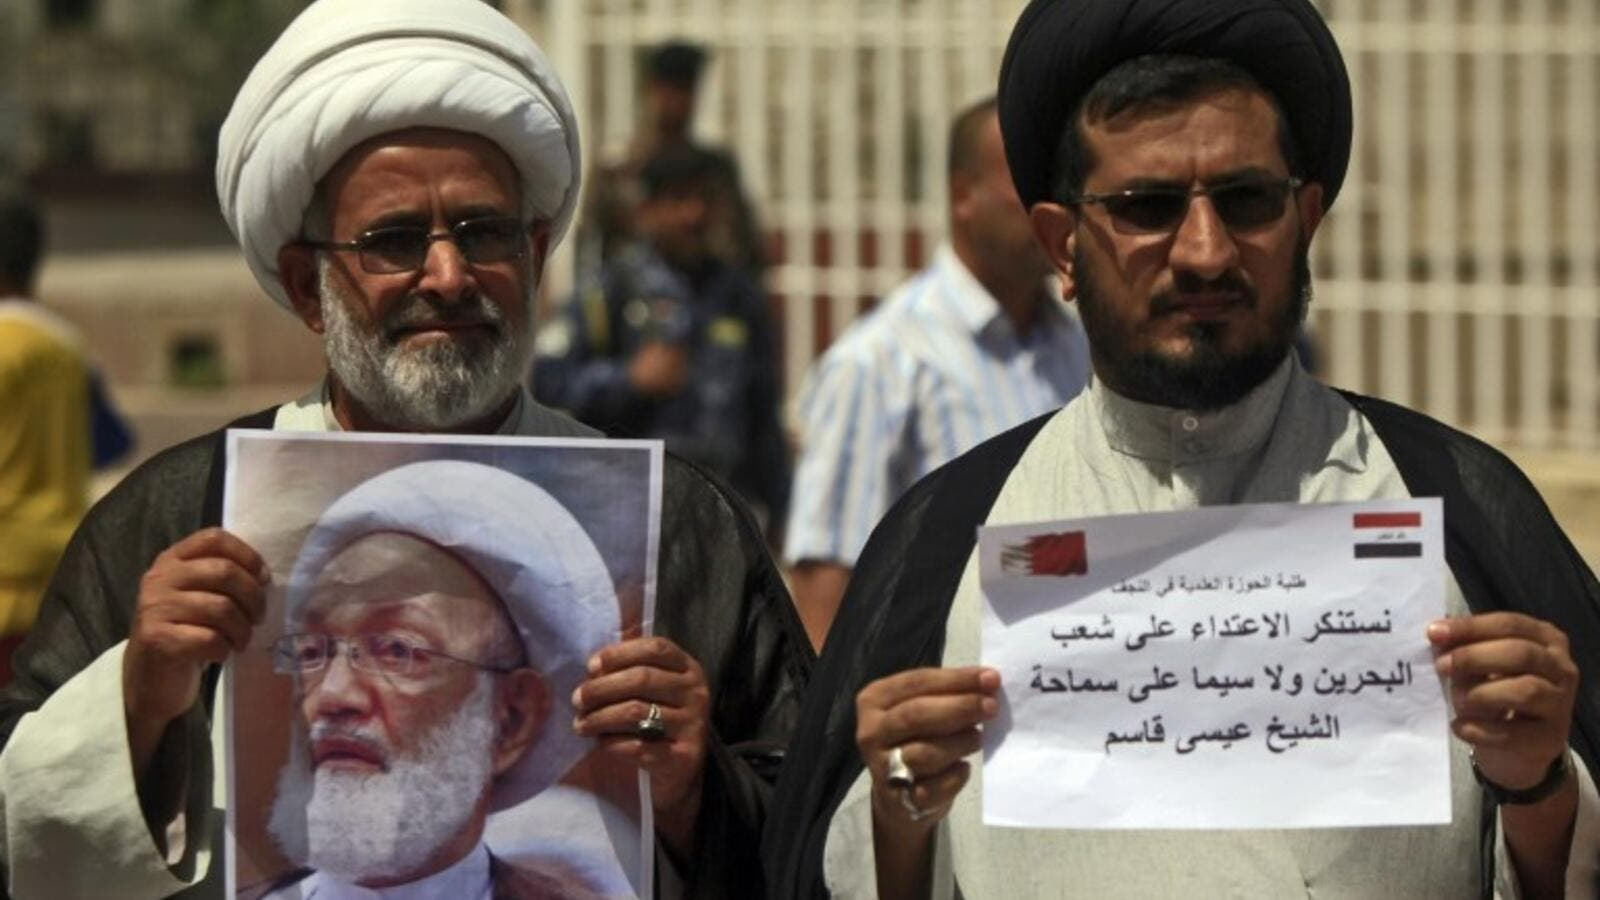 Iraqi Shiite clerics hold a picture of top Bahraini Shiite cleric Isa Qassim during a demonstration in front of the Bahraini consulate in Najaf on May 24, 2017 in solidarity with the Bahraini Shiite opposition and with the leading cleric. (Haidar Hamdani/AFP)